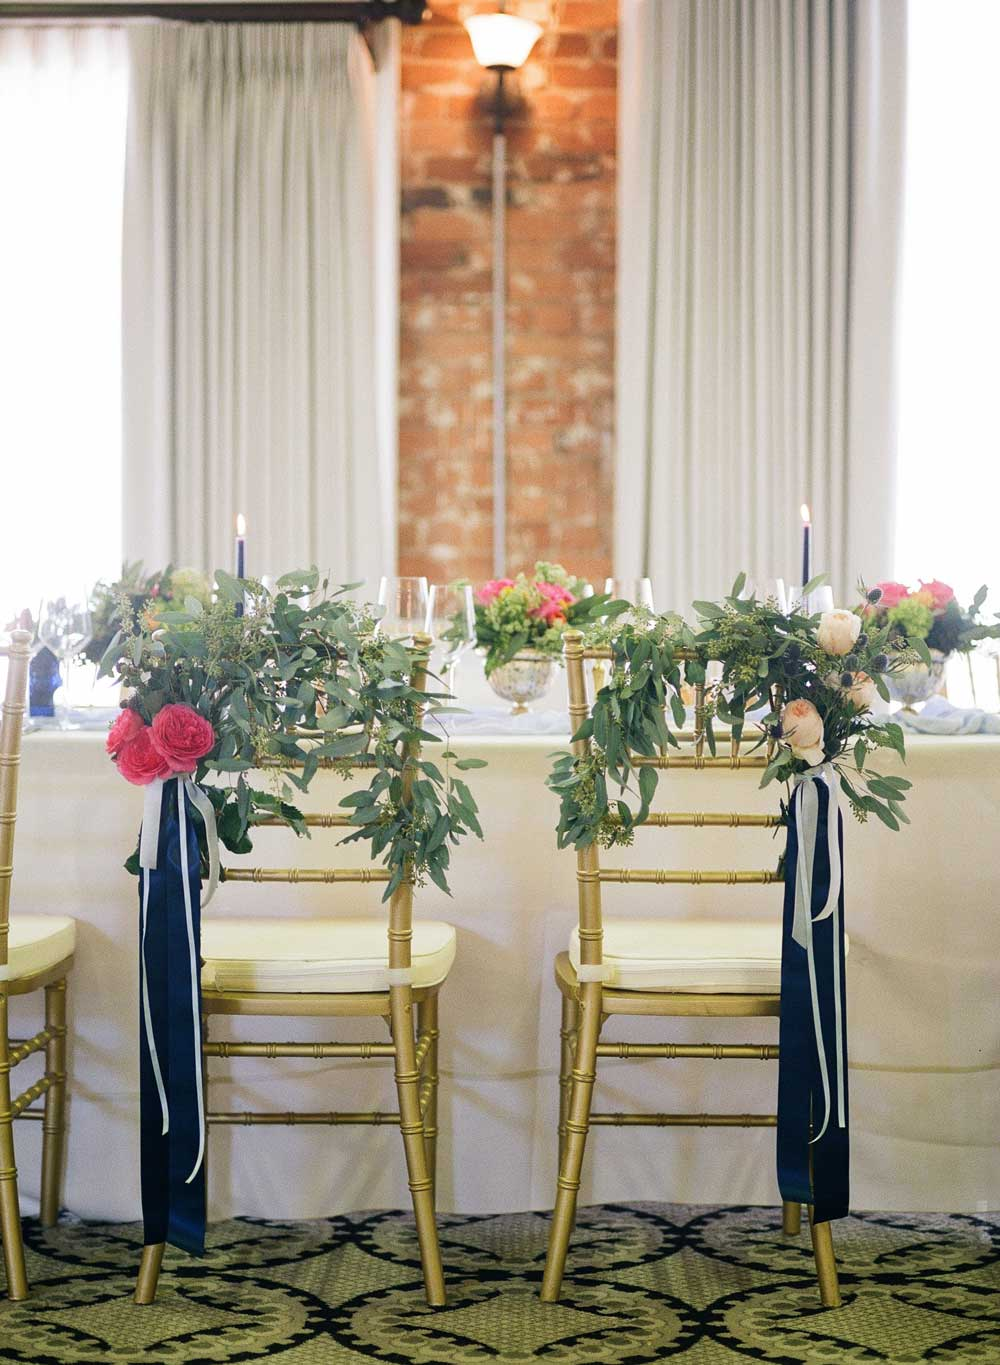 bride-and-groom-wedding-reception-chairs